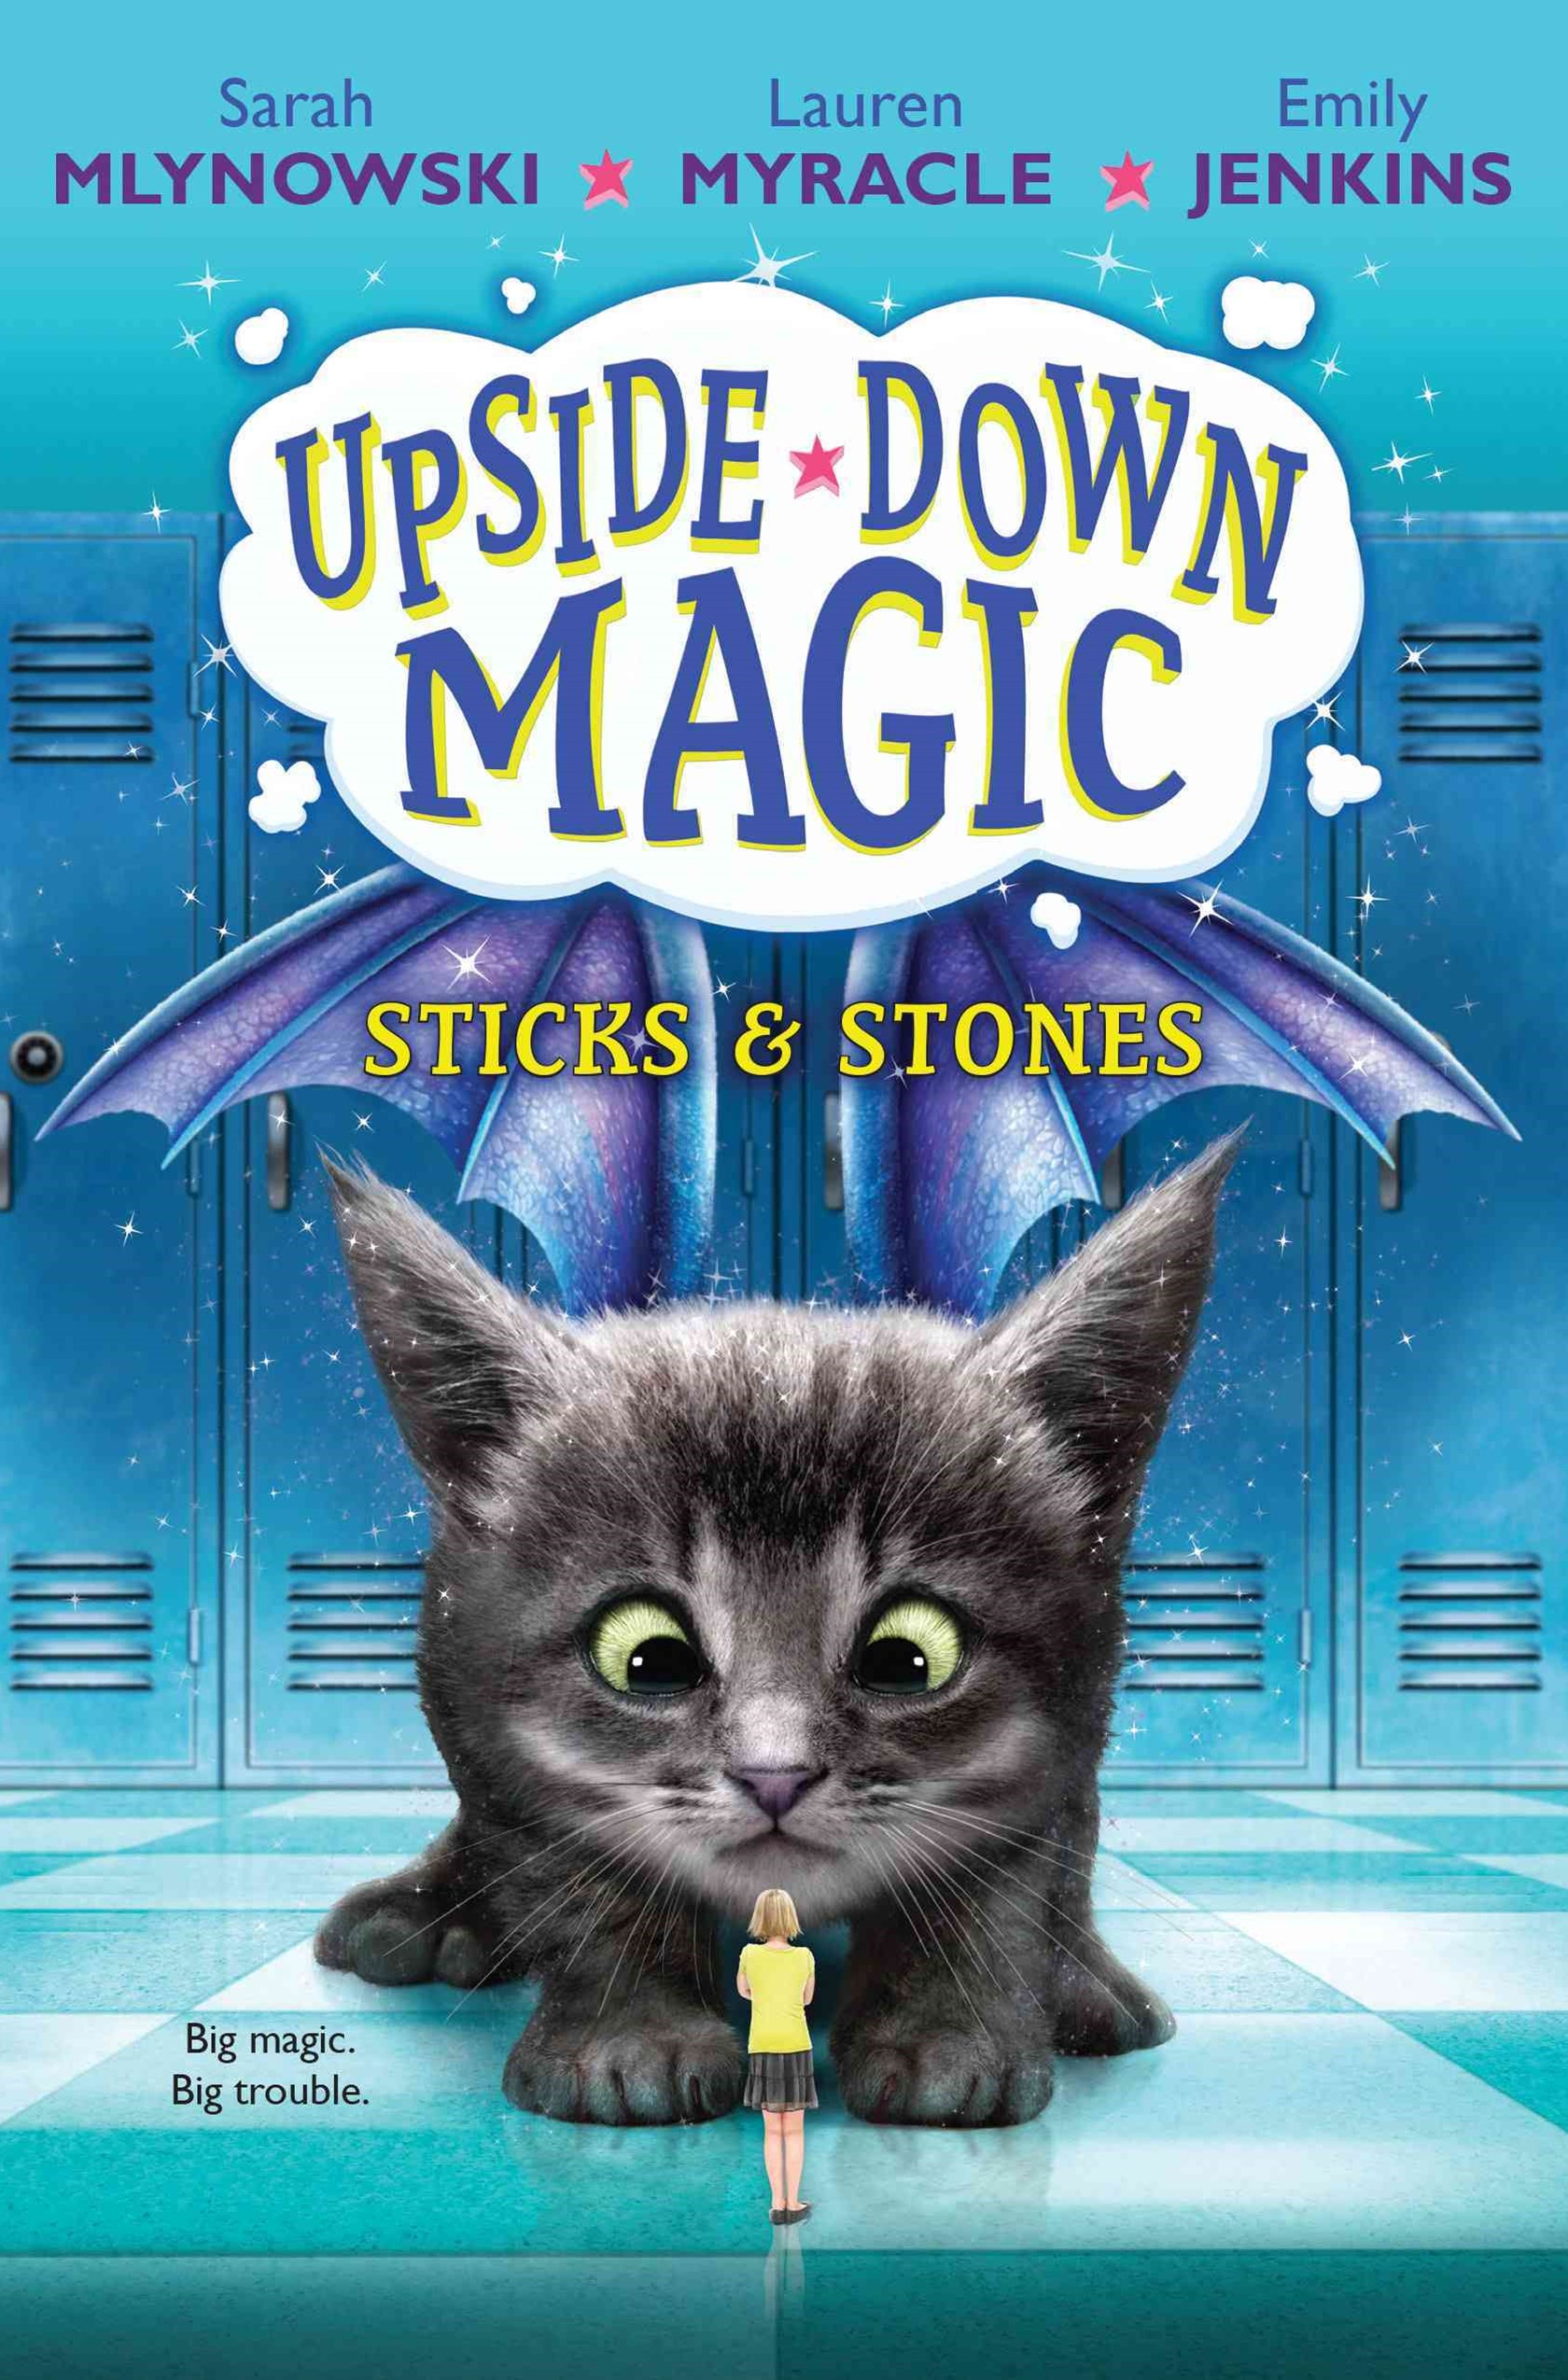 Upside-down Magic: Sticks & Stones